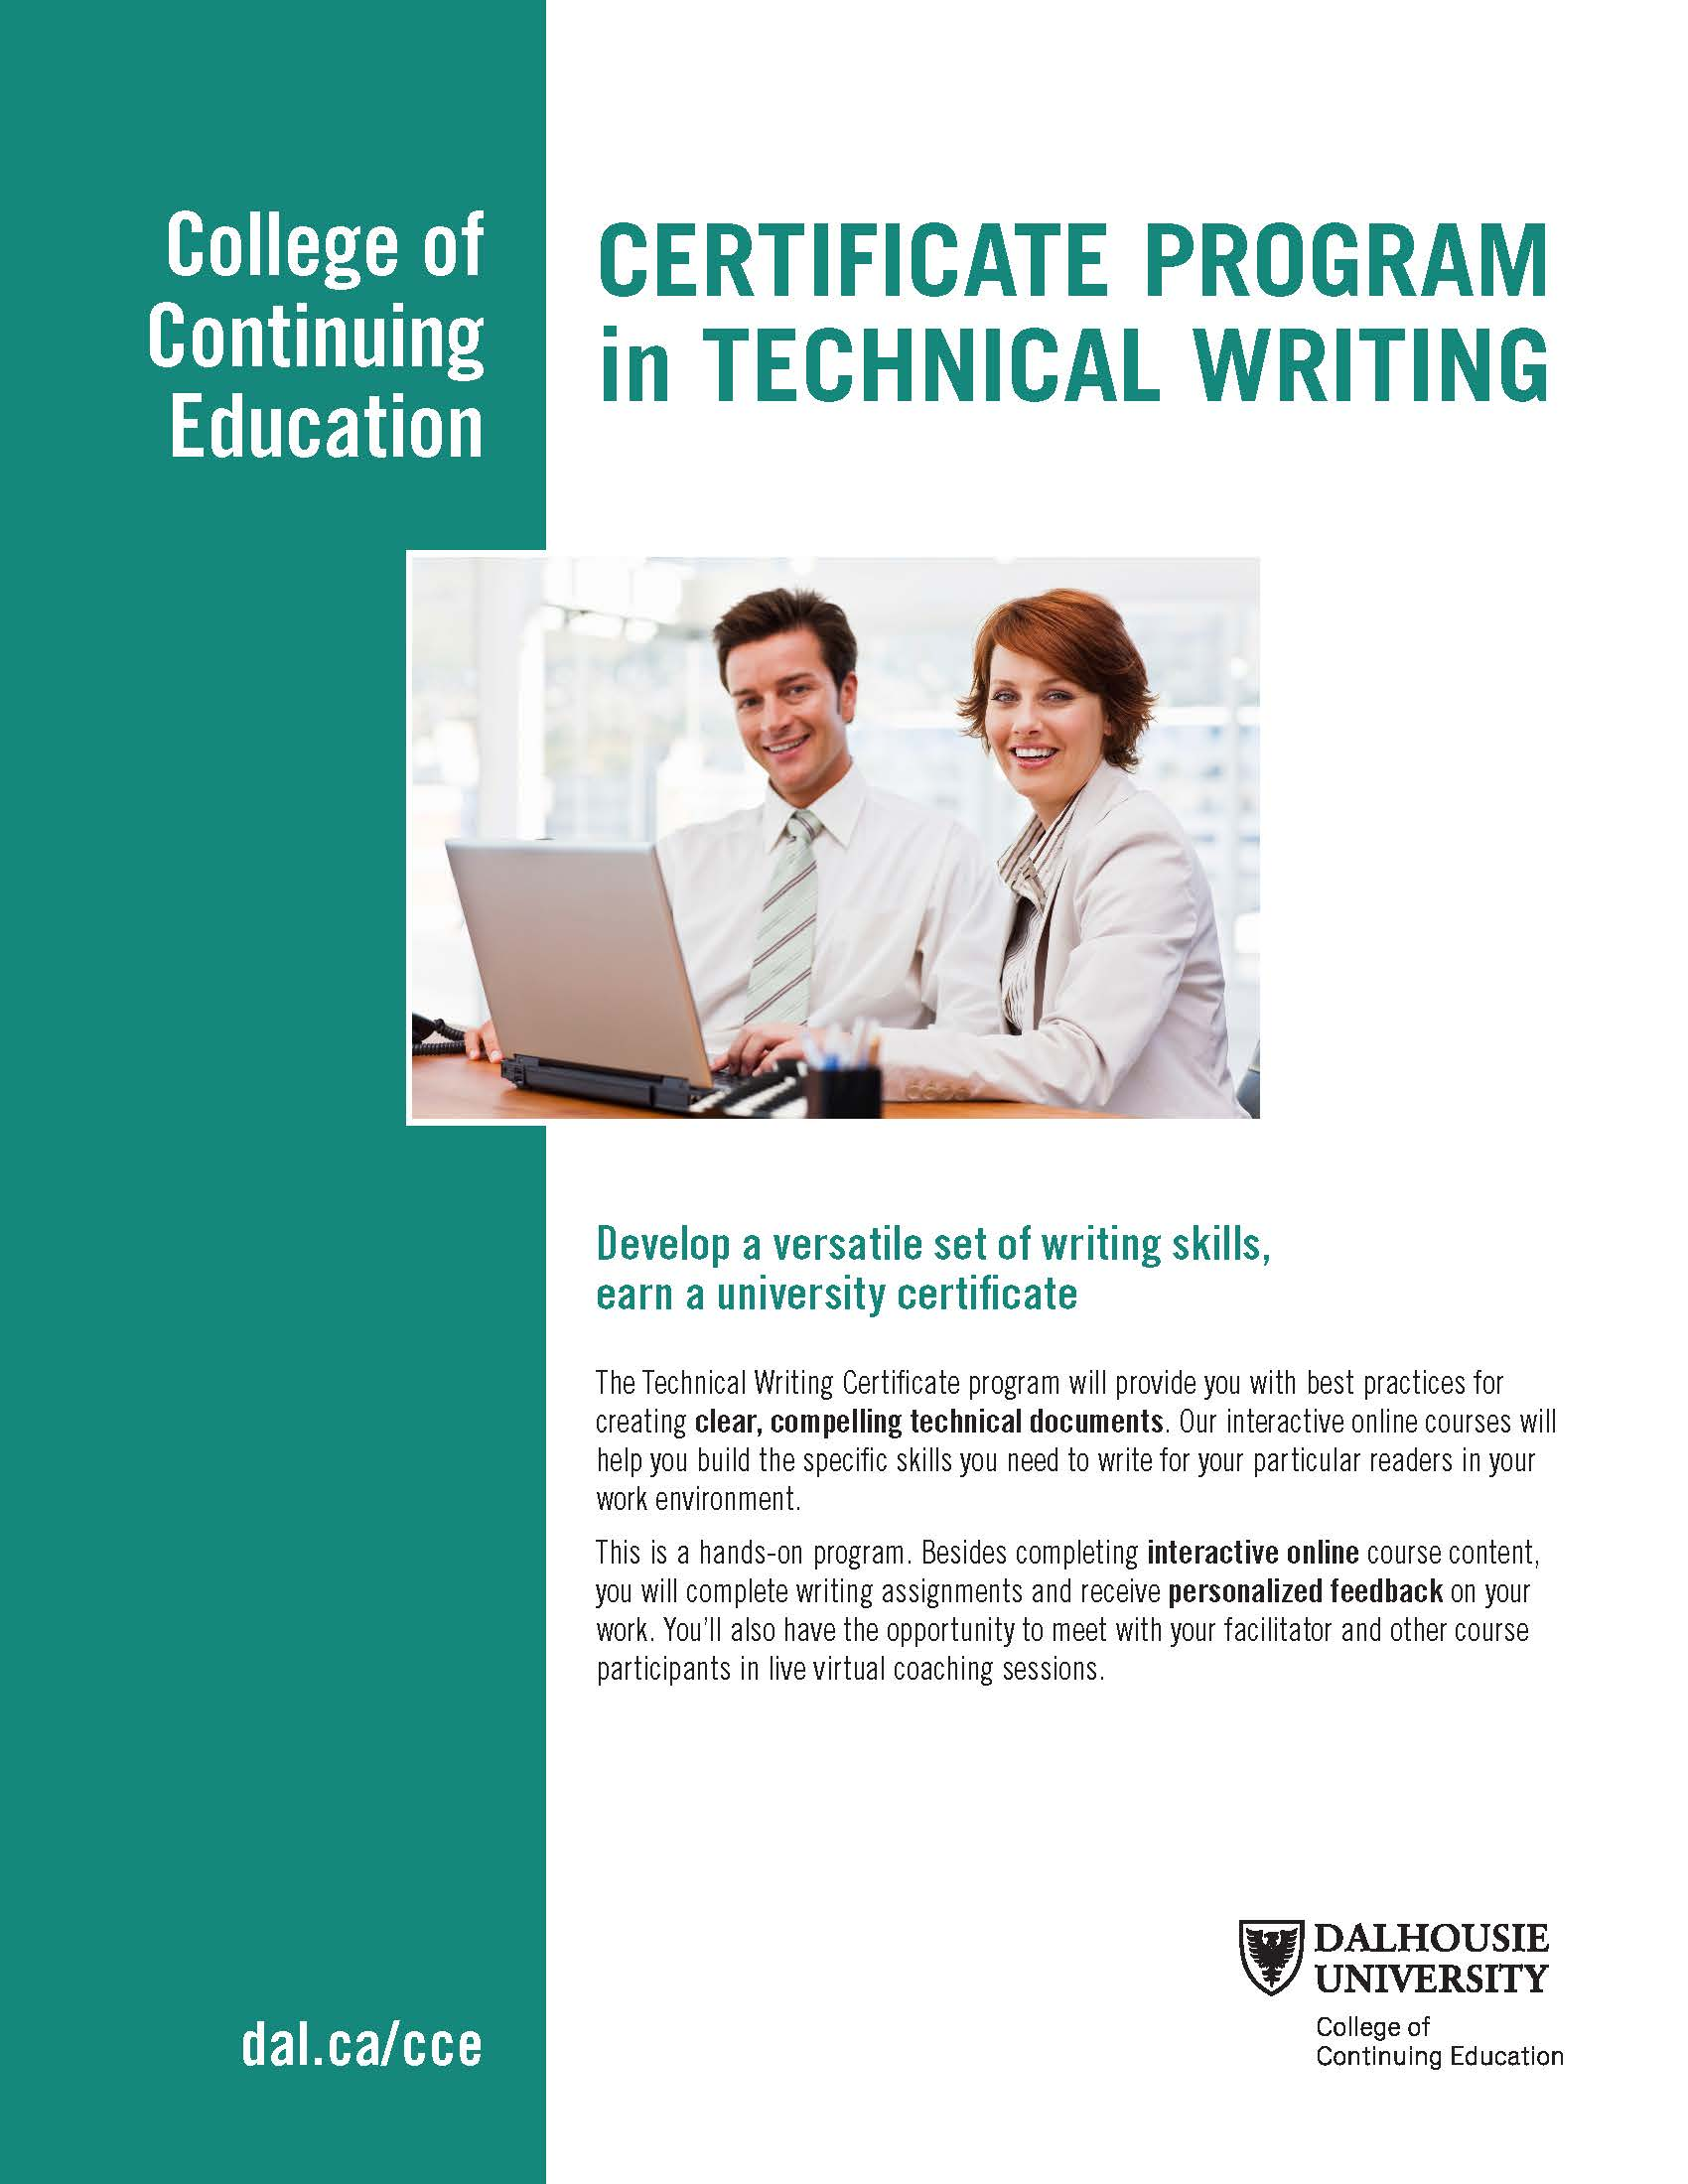 Online Technical Writing Course Ontario  Immigrantsessay. Medical Device Manufacturer Costco Gas Card. Auto Repair West Palm Beach Fl. Assisted Living Mckinney Tx Mn Workers Comp. Enterprise Product Data Management. Computer Data Recovery Service. School Of The Arts In Florida. Flights From Portland To Los Angeles. Tree Service Richmond Virginia